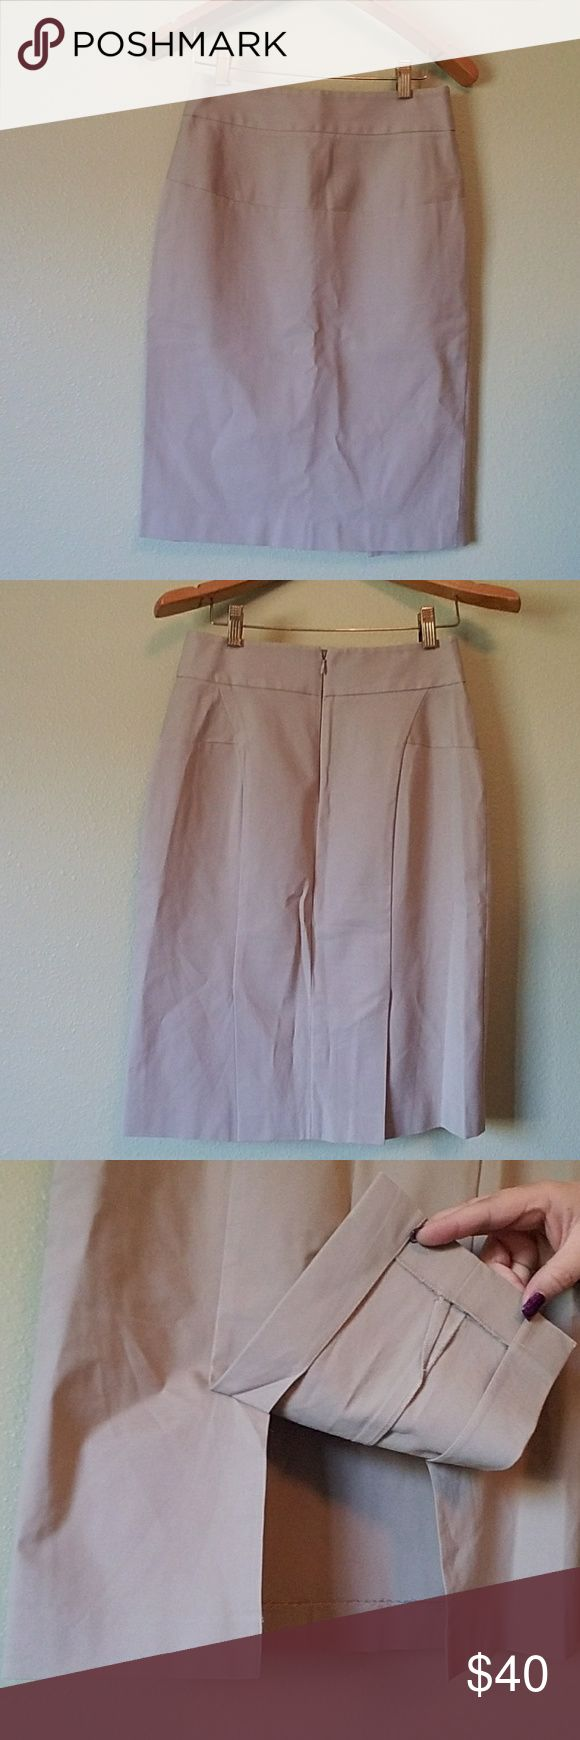 Theory Skirt Khaki pencil skirt with back side zipper and double slit un back by Theory. This is a size 6 and in great shape! Theory Skirts Pencil